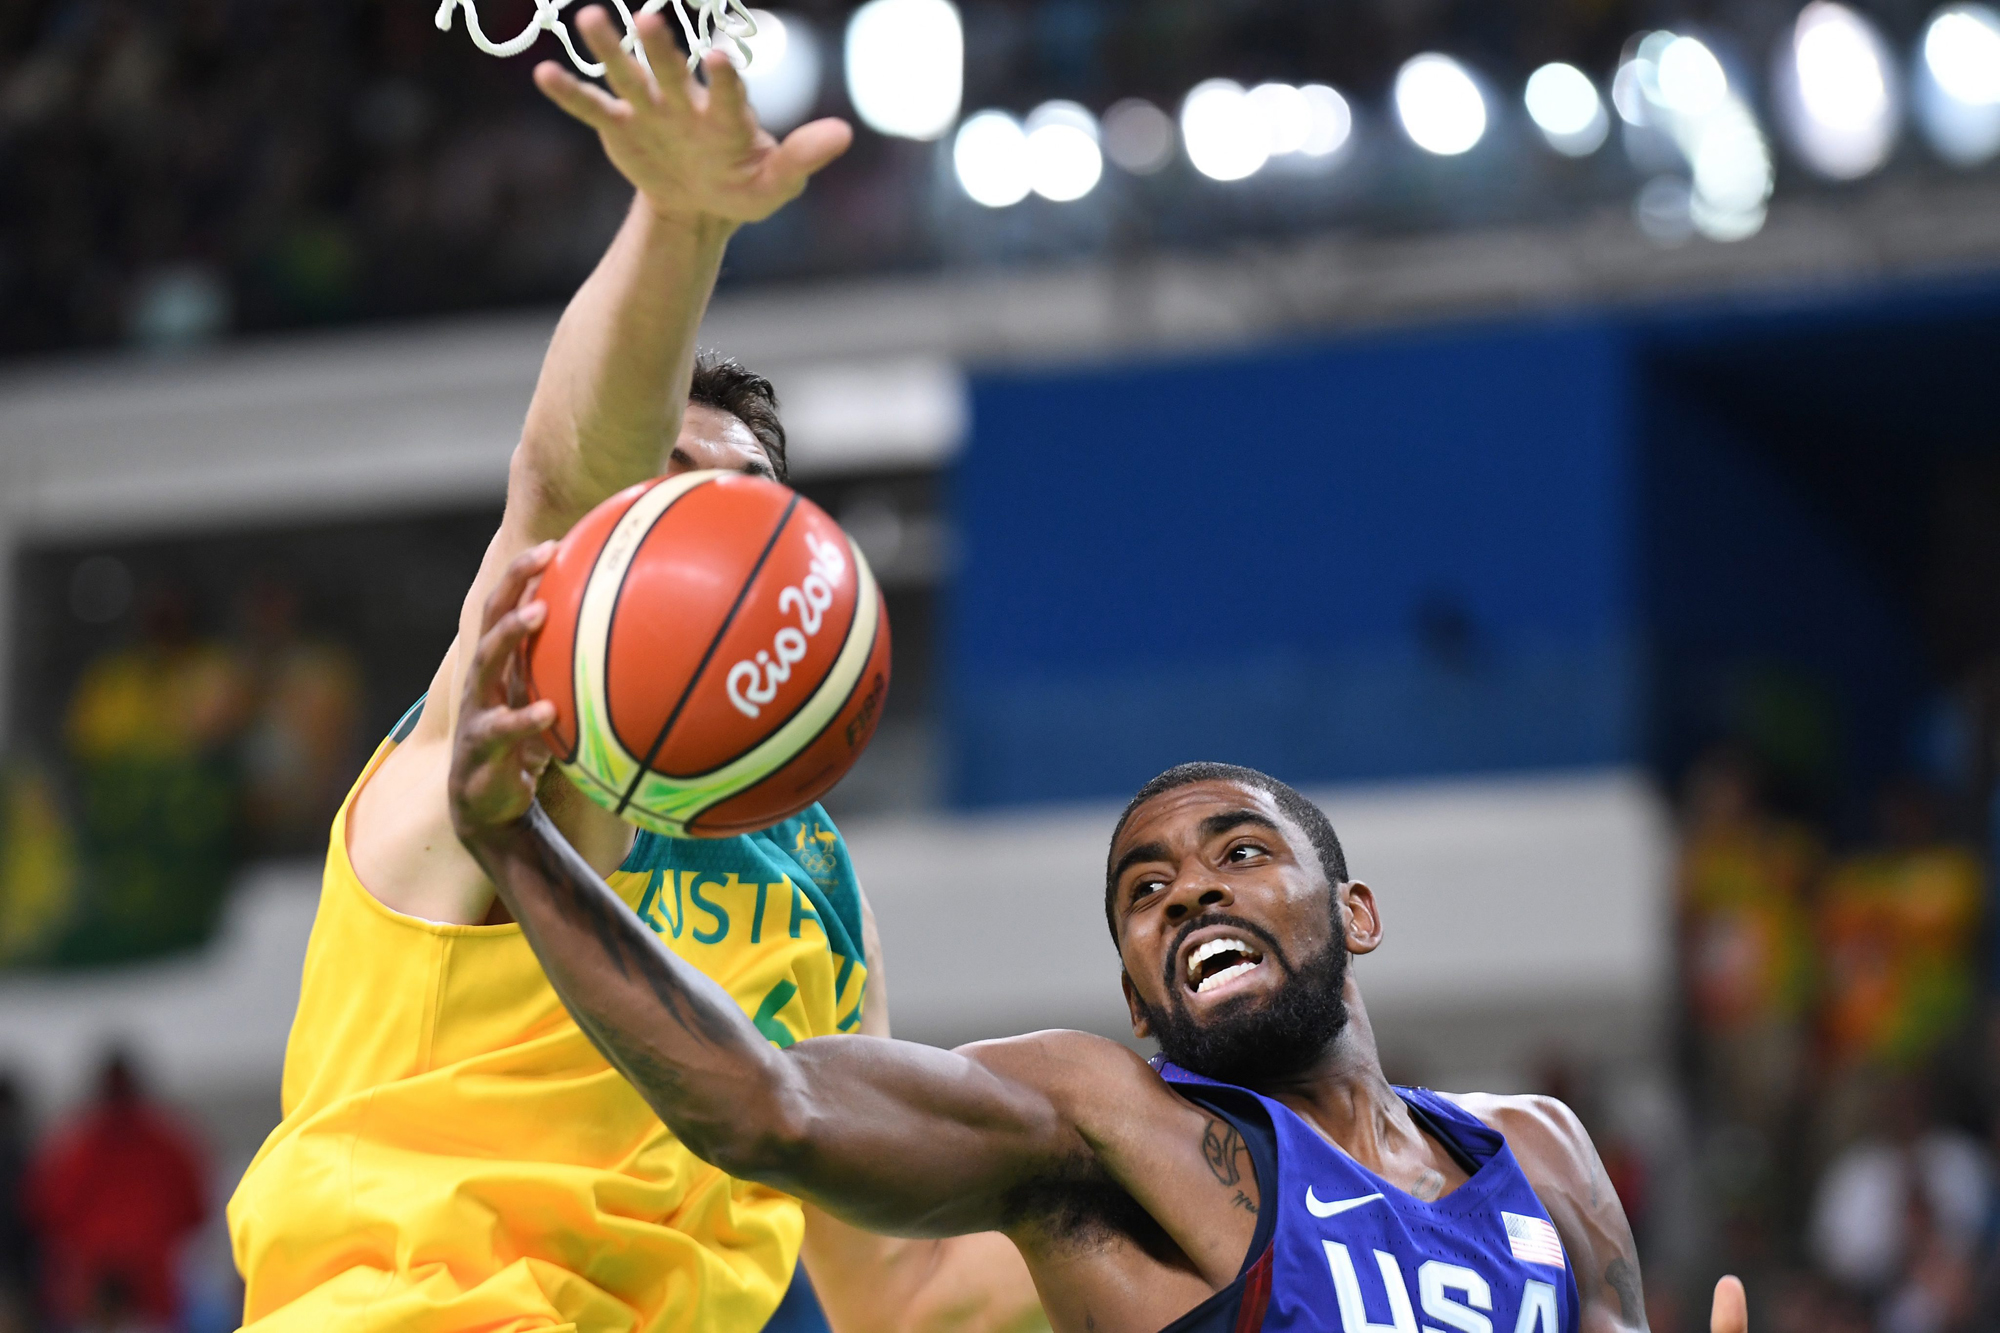 Australia's Andrew Bogut (L, obscured) tries to block USA's Kyrie Irving during their Men's Preliminary Round Group A match between Australia and the USA for the Rio 2016 Olympic Games at the Youth Arena in Rio de Janeiro, Brazil, 10 August 2016.